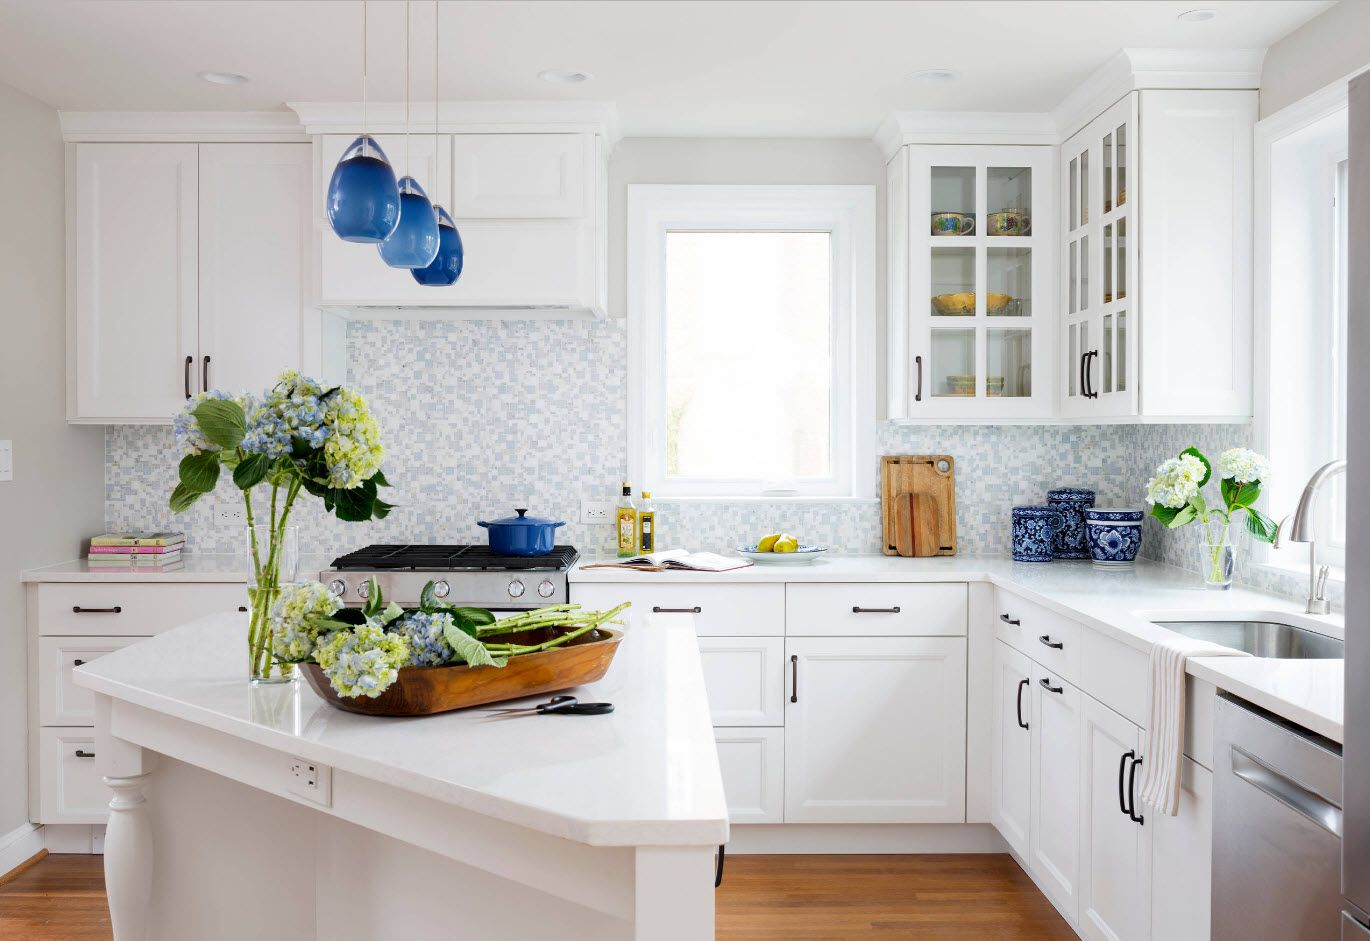 Totally white rustic kitchen with irregular geometry